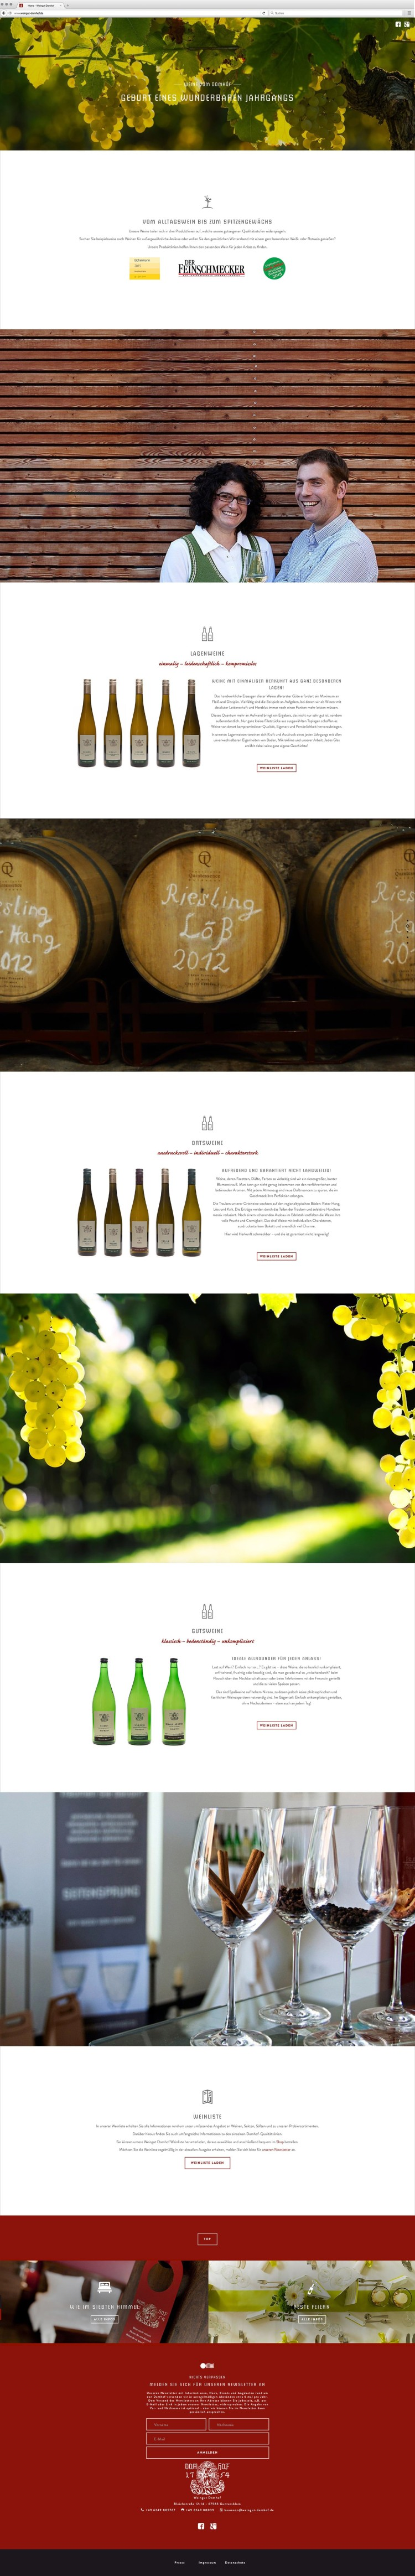 domhof_website_2015_2